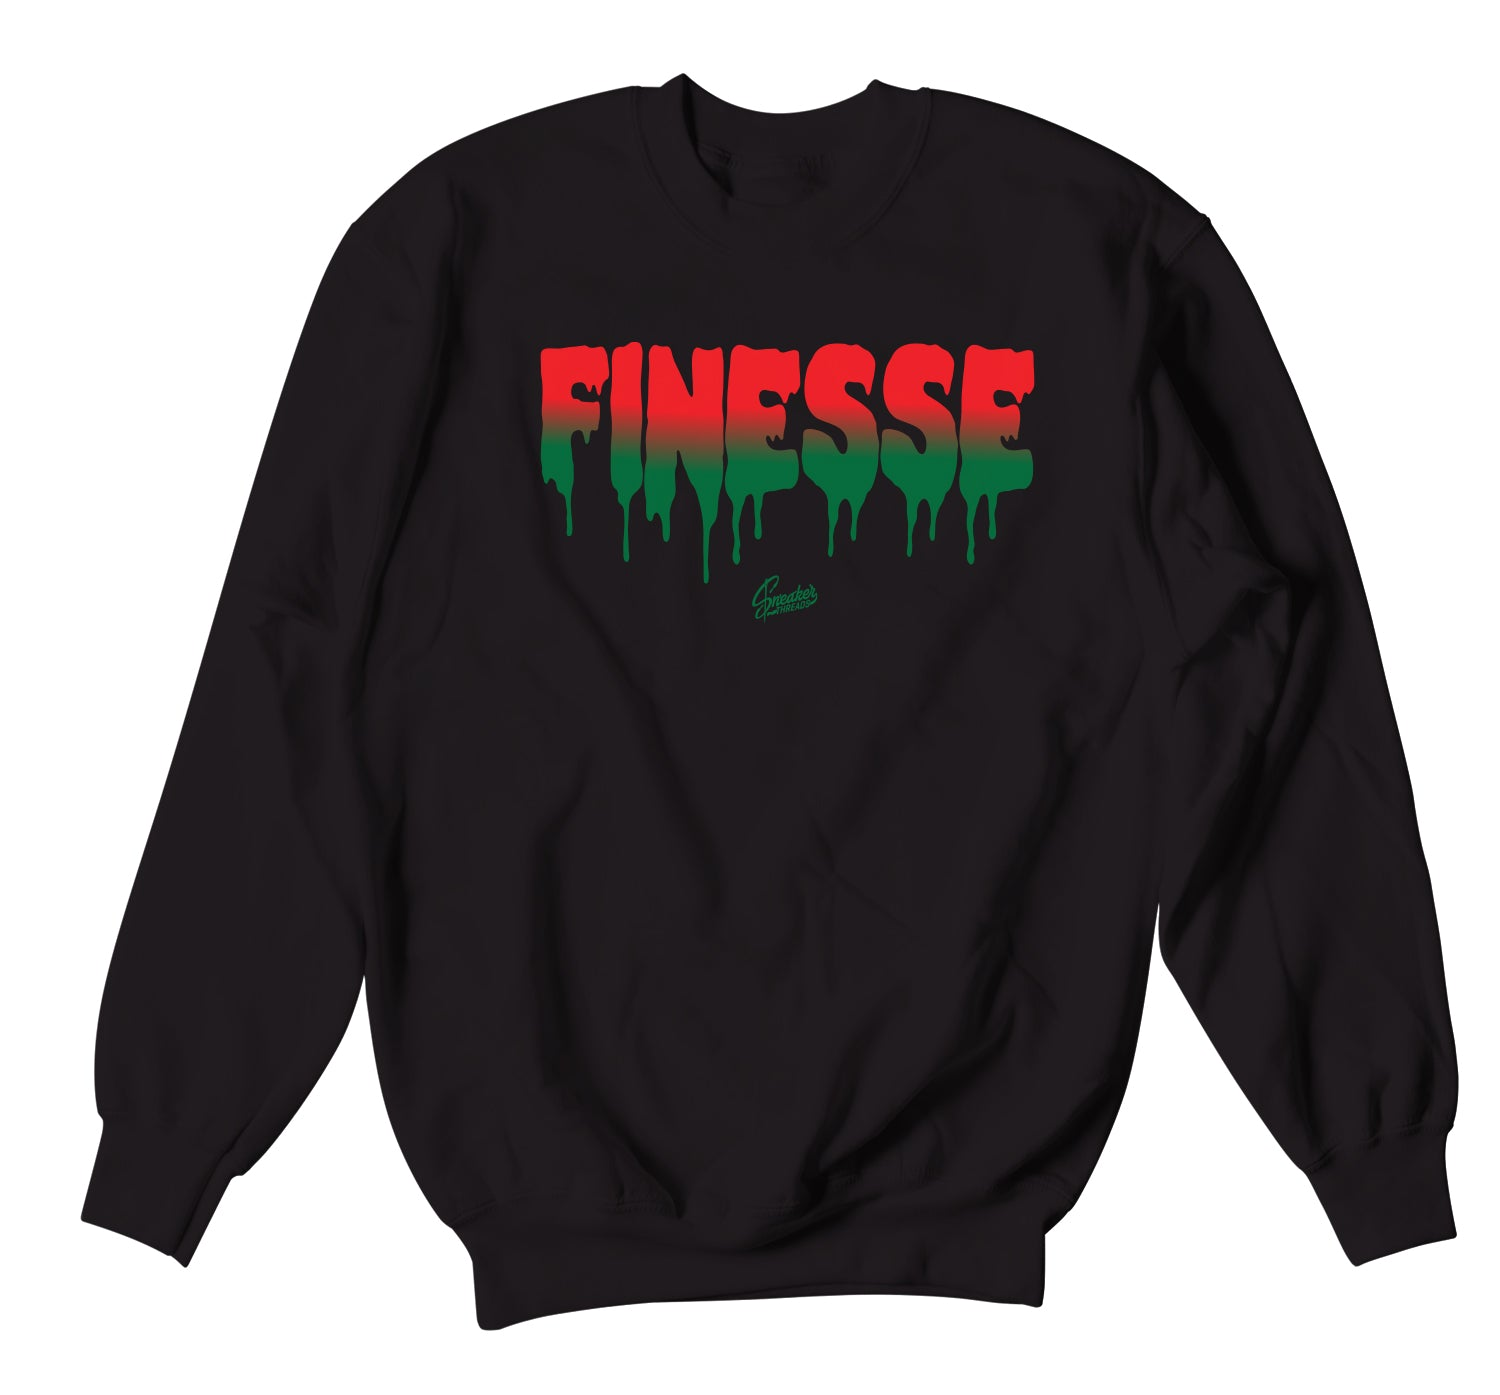 Air Max Duck Camo Sweater - Finesse - Black